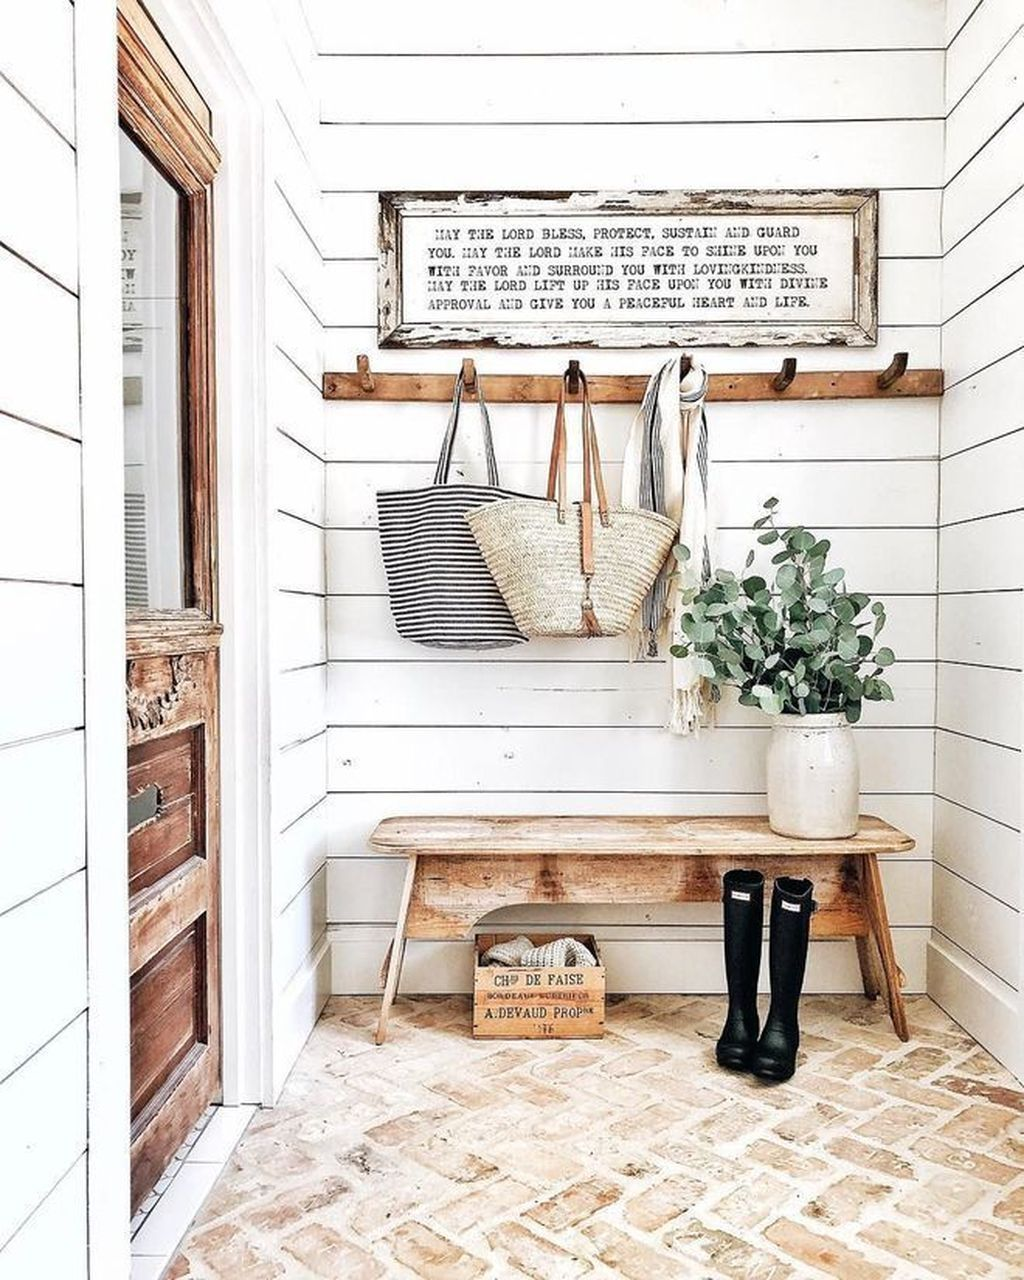 The Best Ideas To Decorate Interior Design With Farmhouse Style 27